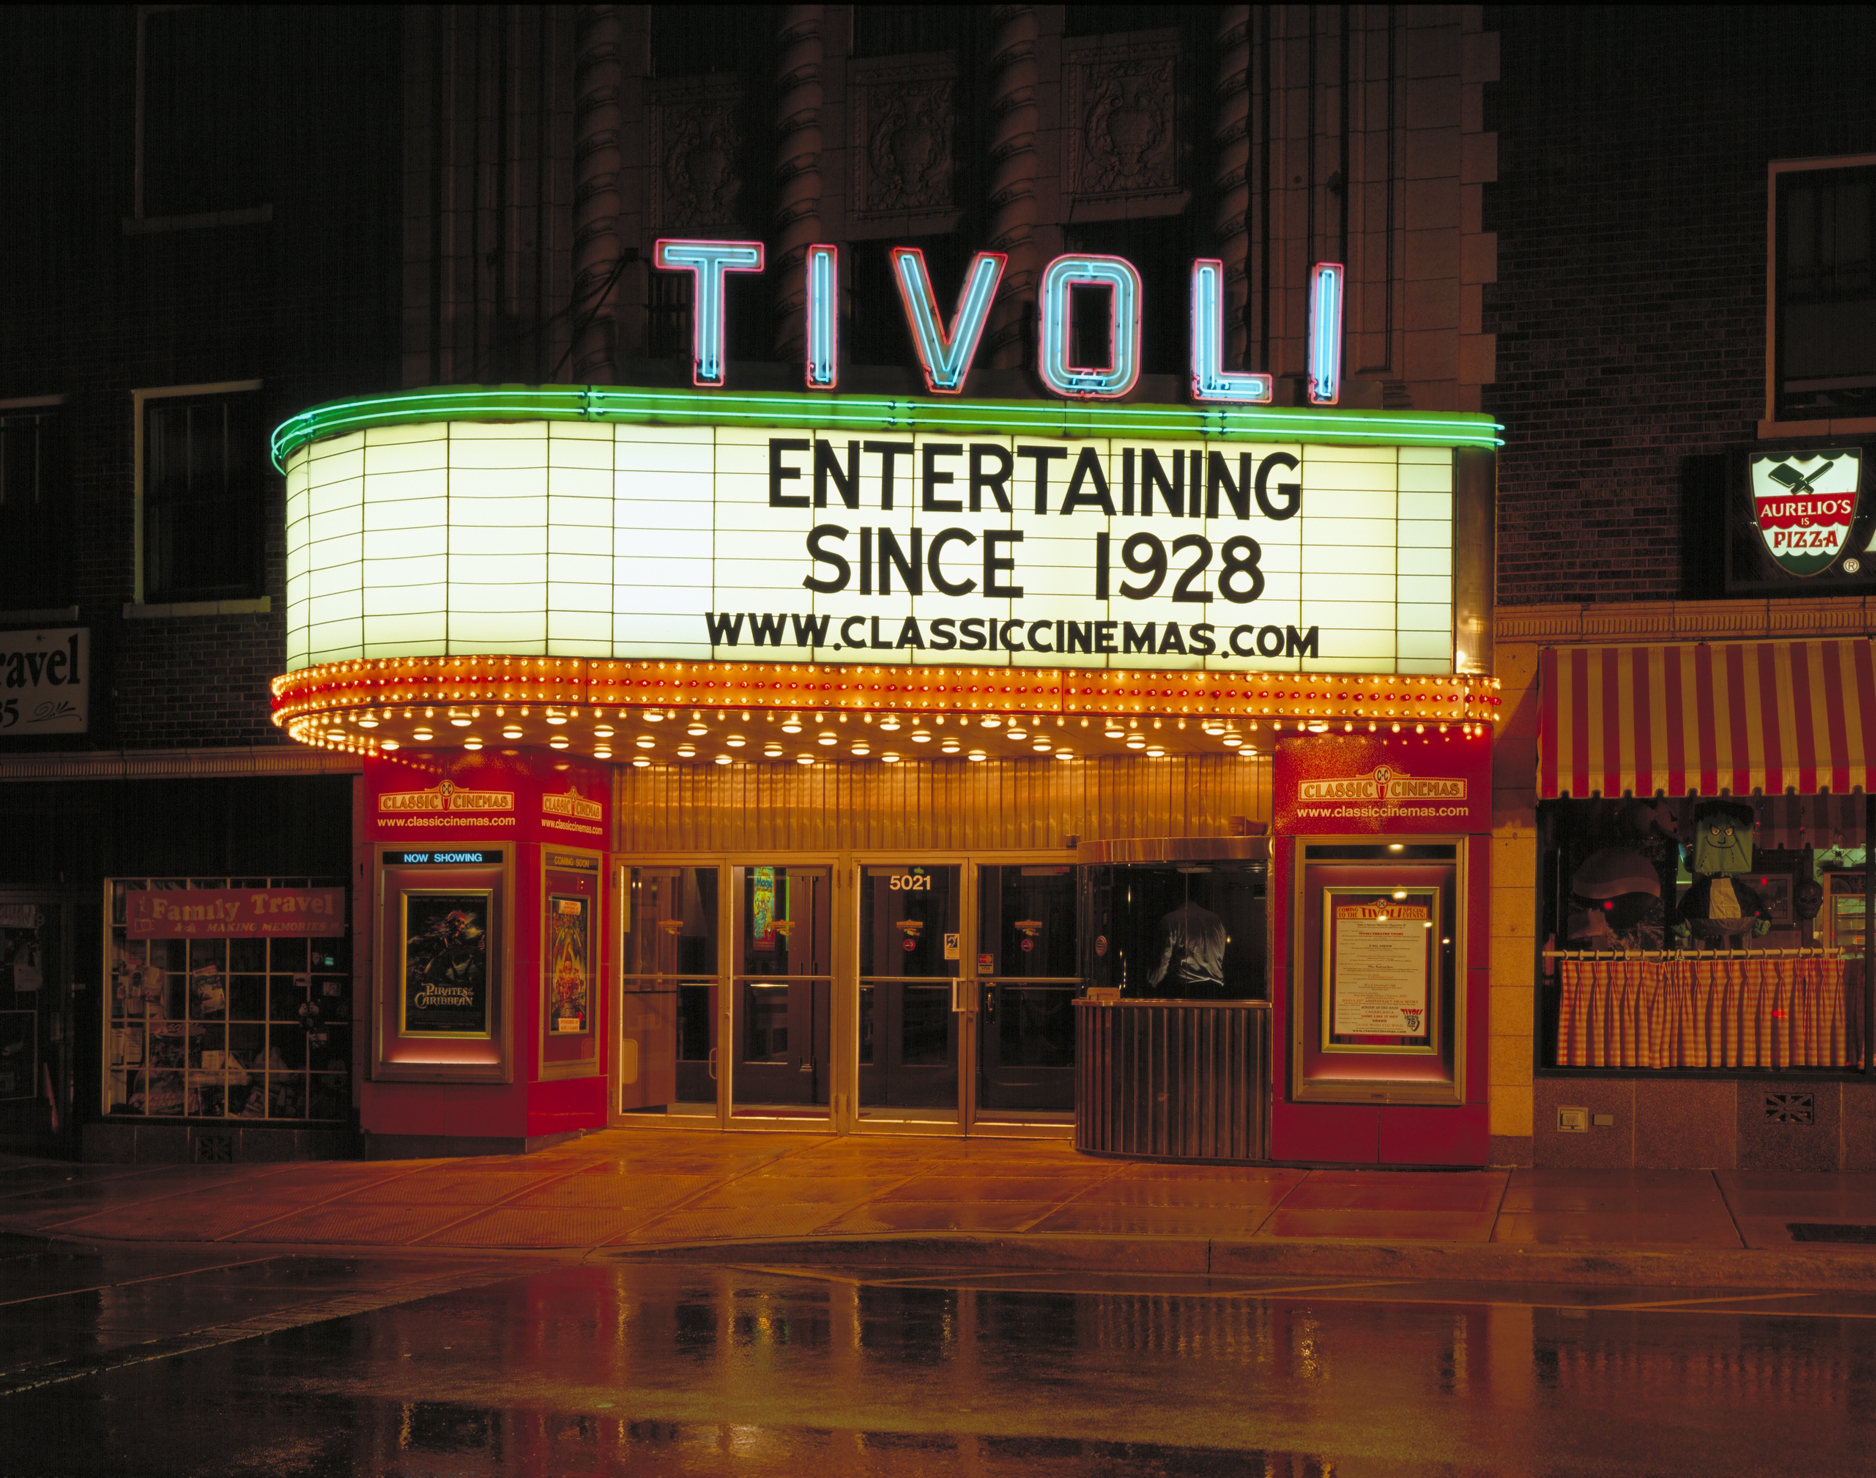 Tivoli Theatre In Downers Grove Il Burlington Place Apartments Downers Grove Franklin